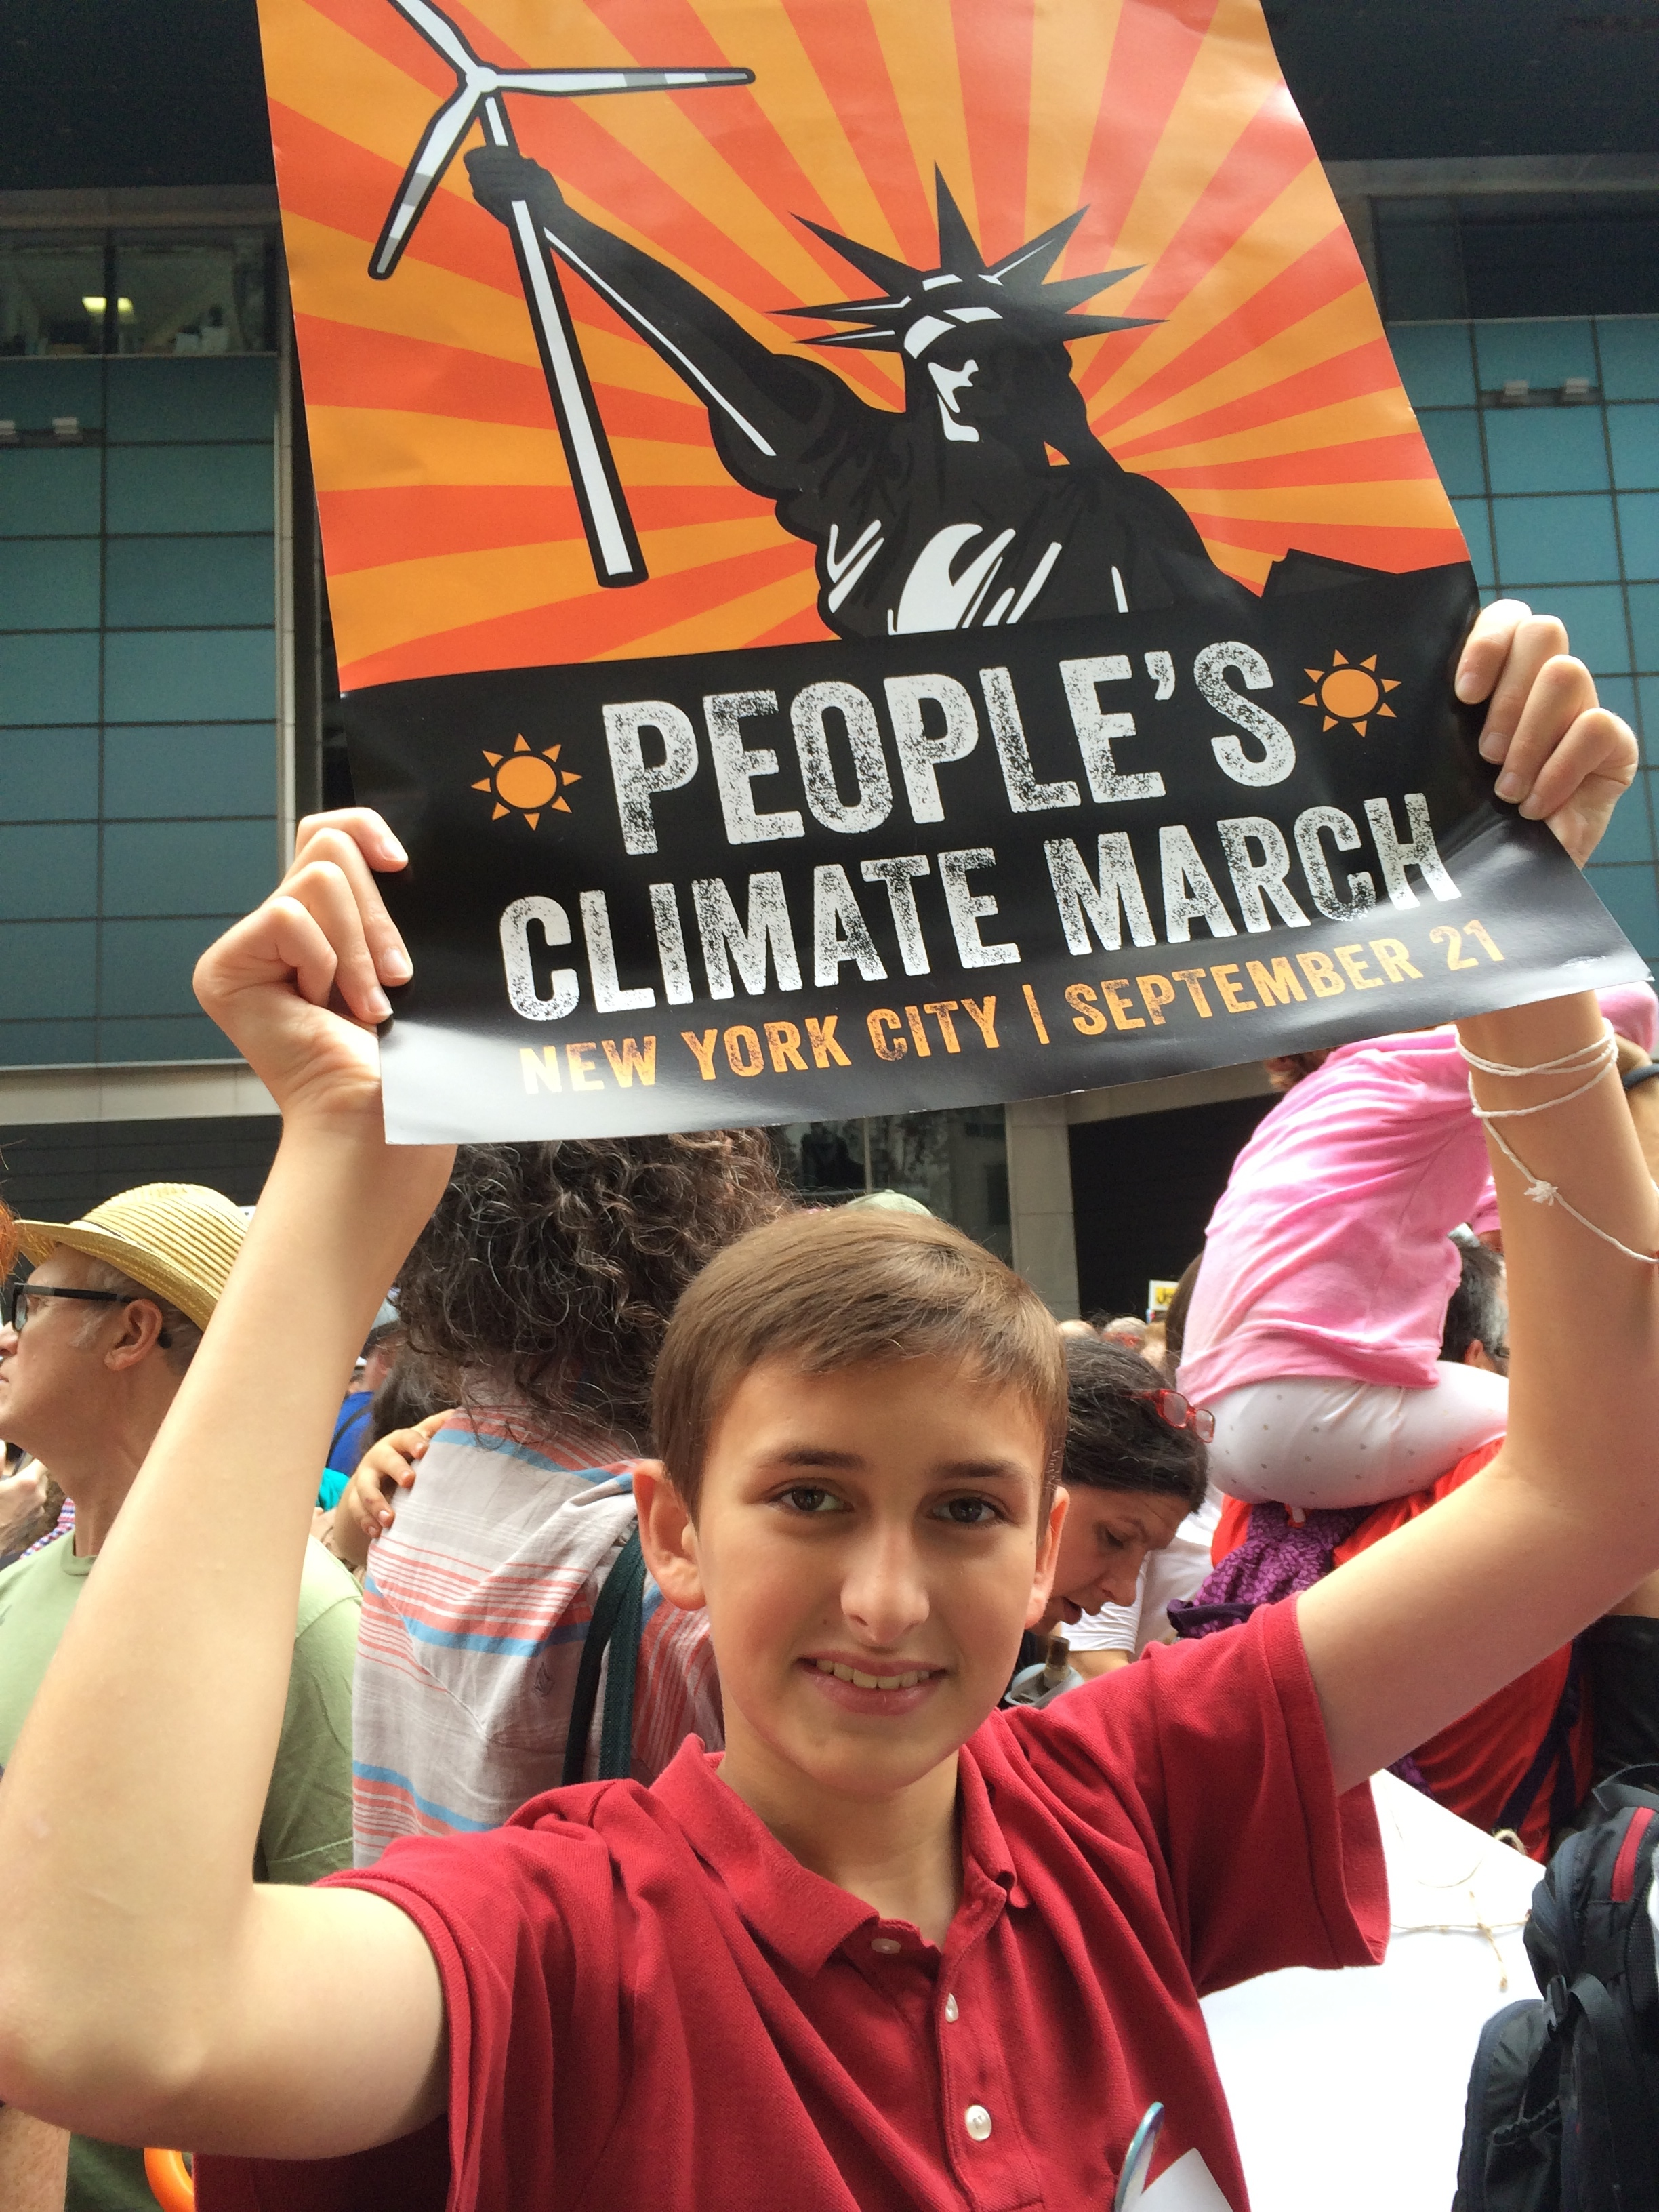 My dear friend Sharon's 14-year-old son, Sam, at the Peoples Climate March